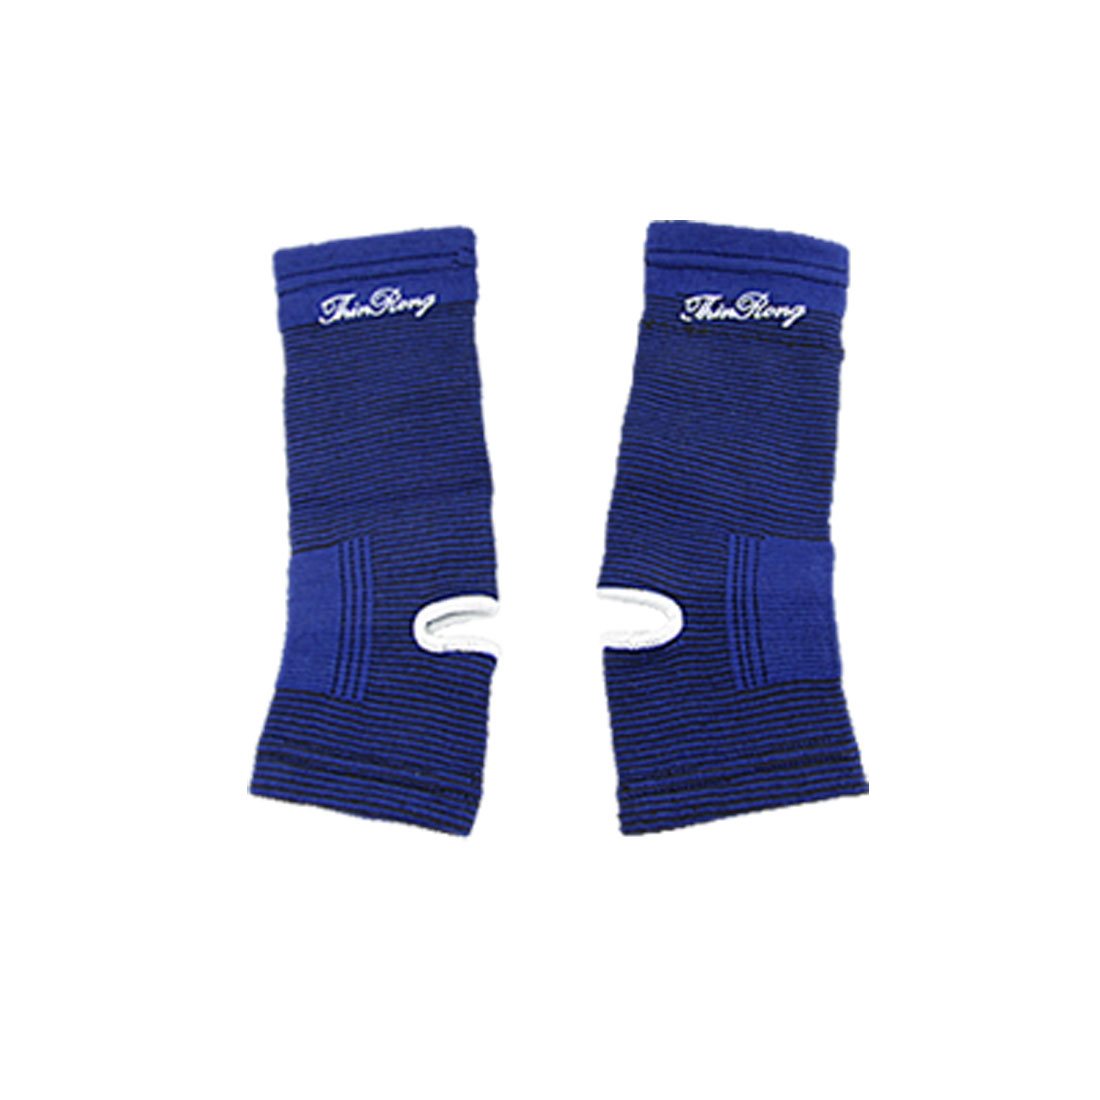 Elastic Black Blue Pinestripe Ankle Support Brace 2 Pcs